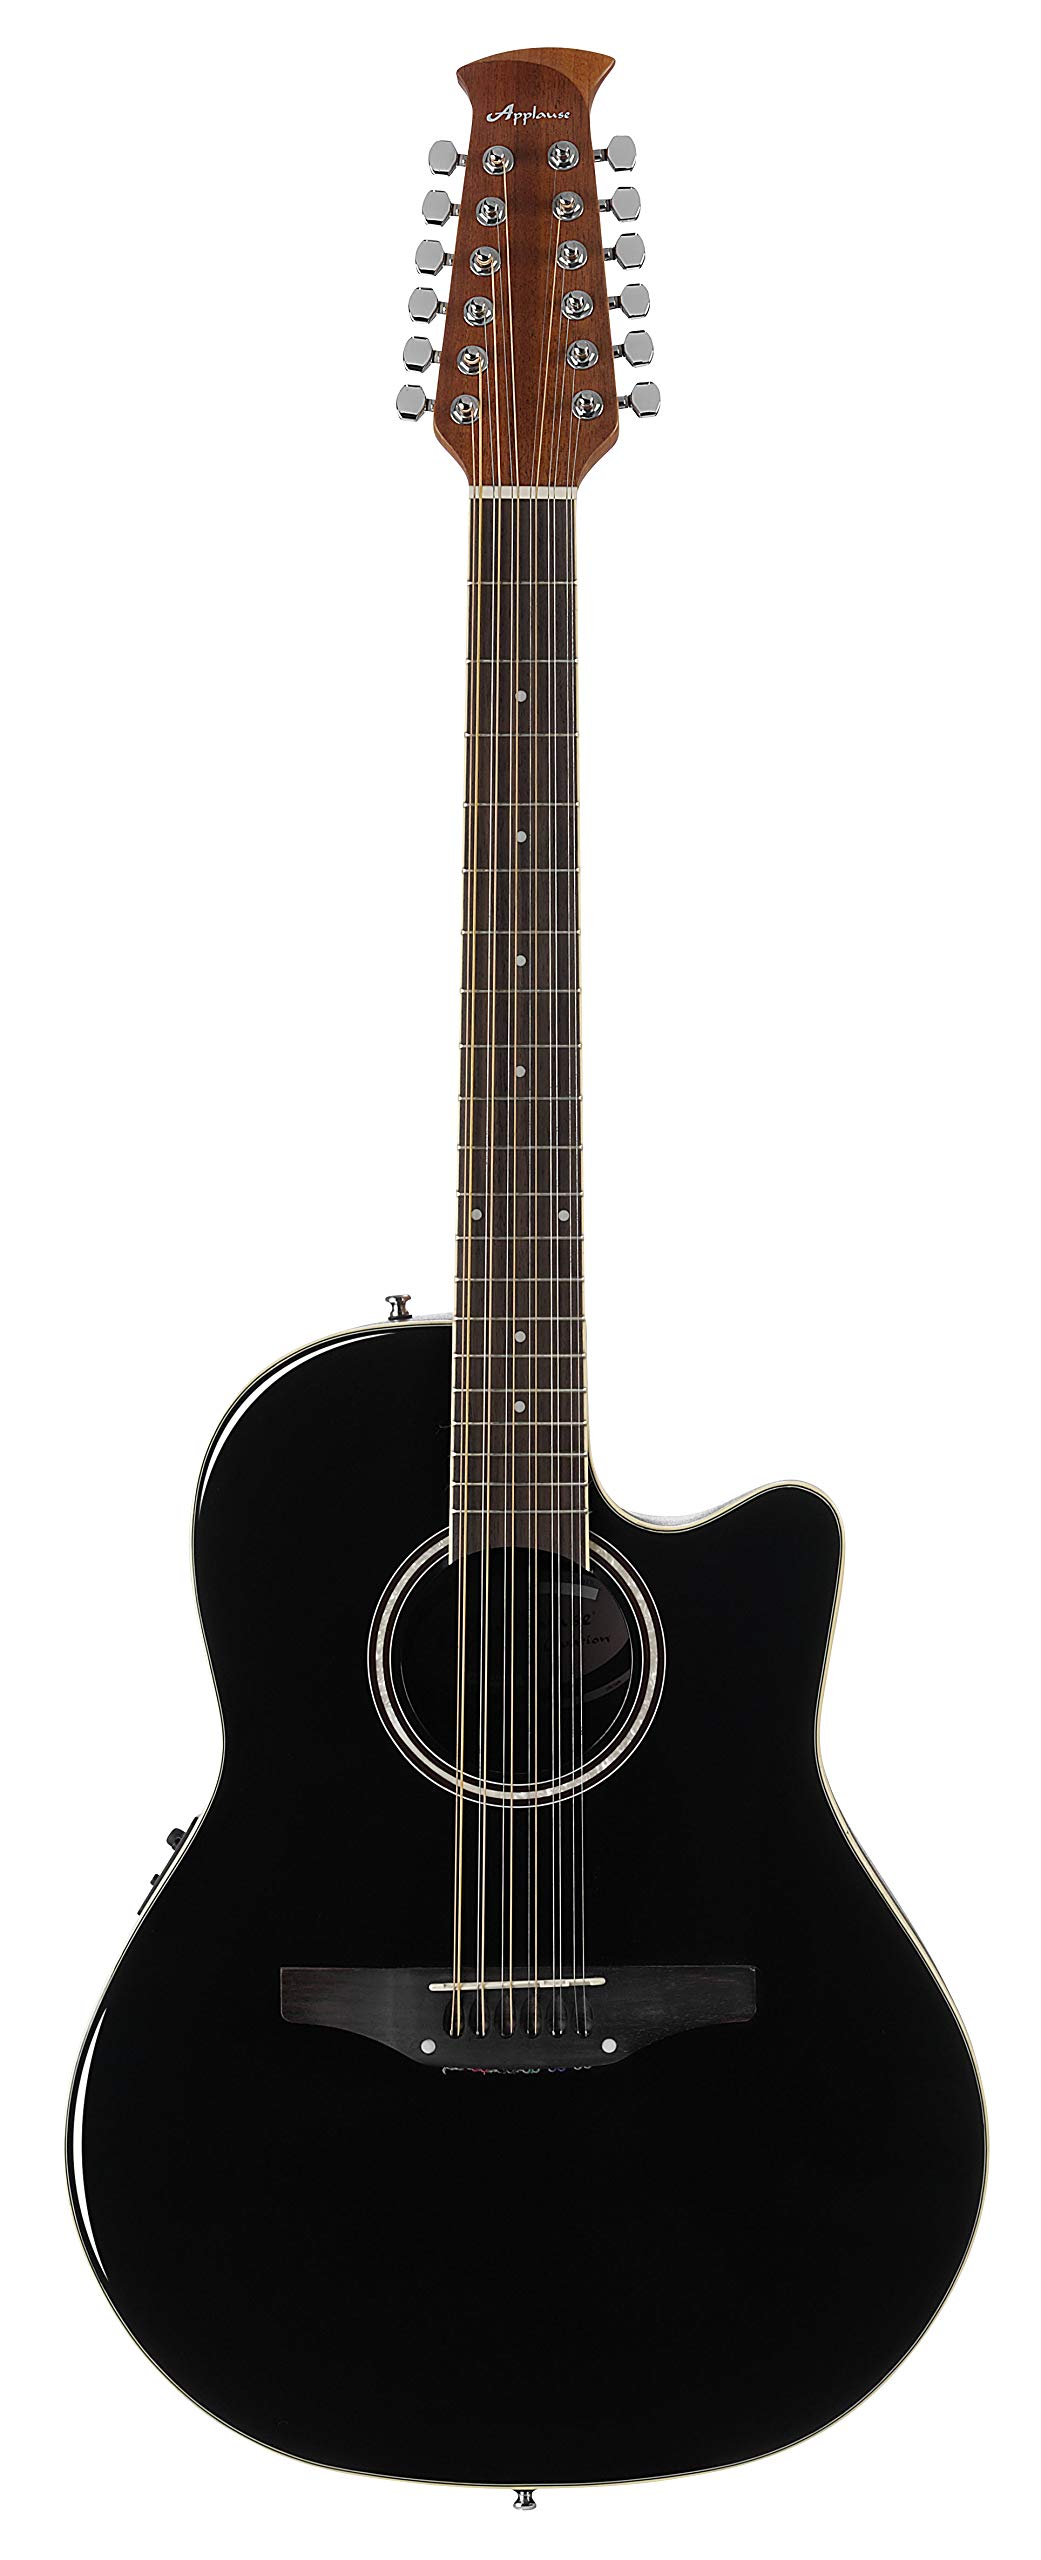 Ovation Applause 12 String Acoustic Guitar, Right, Black, Mid Depth Body (AB2412II-5) by Ovation